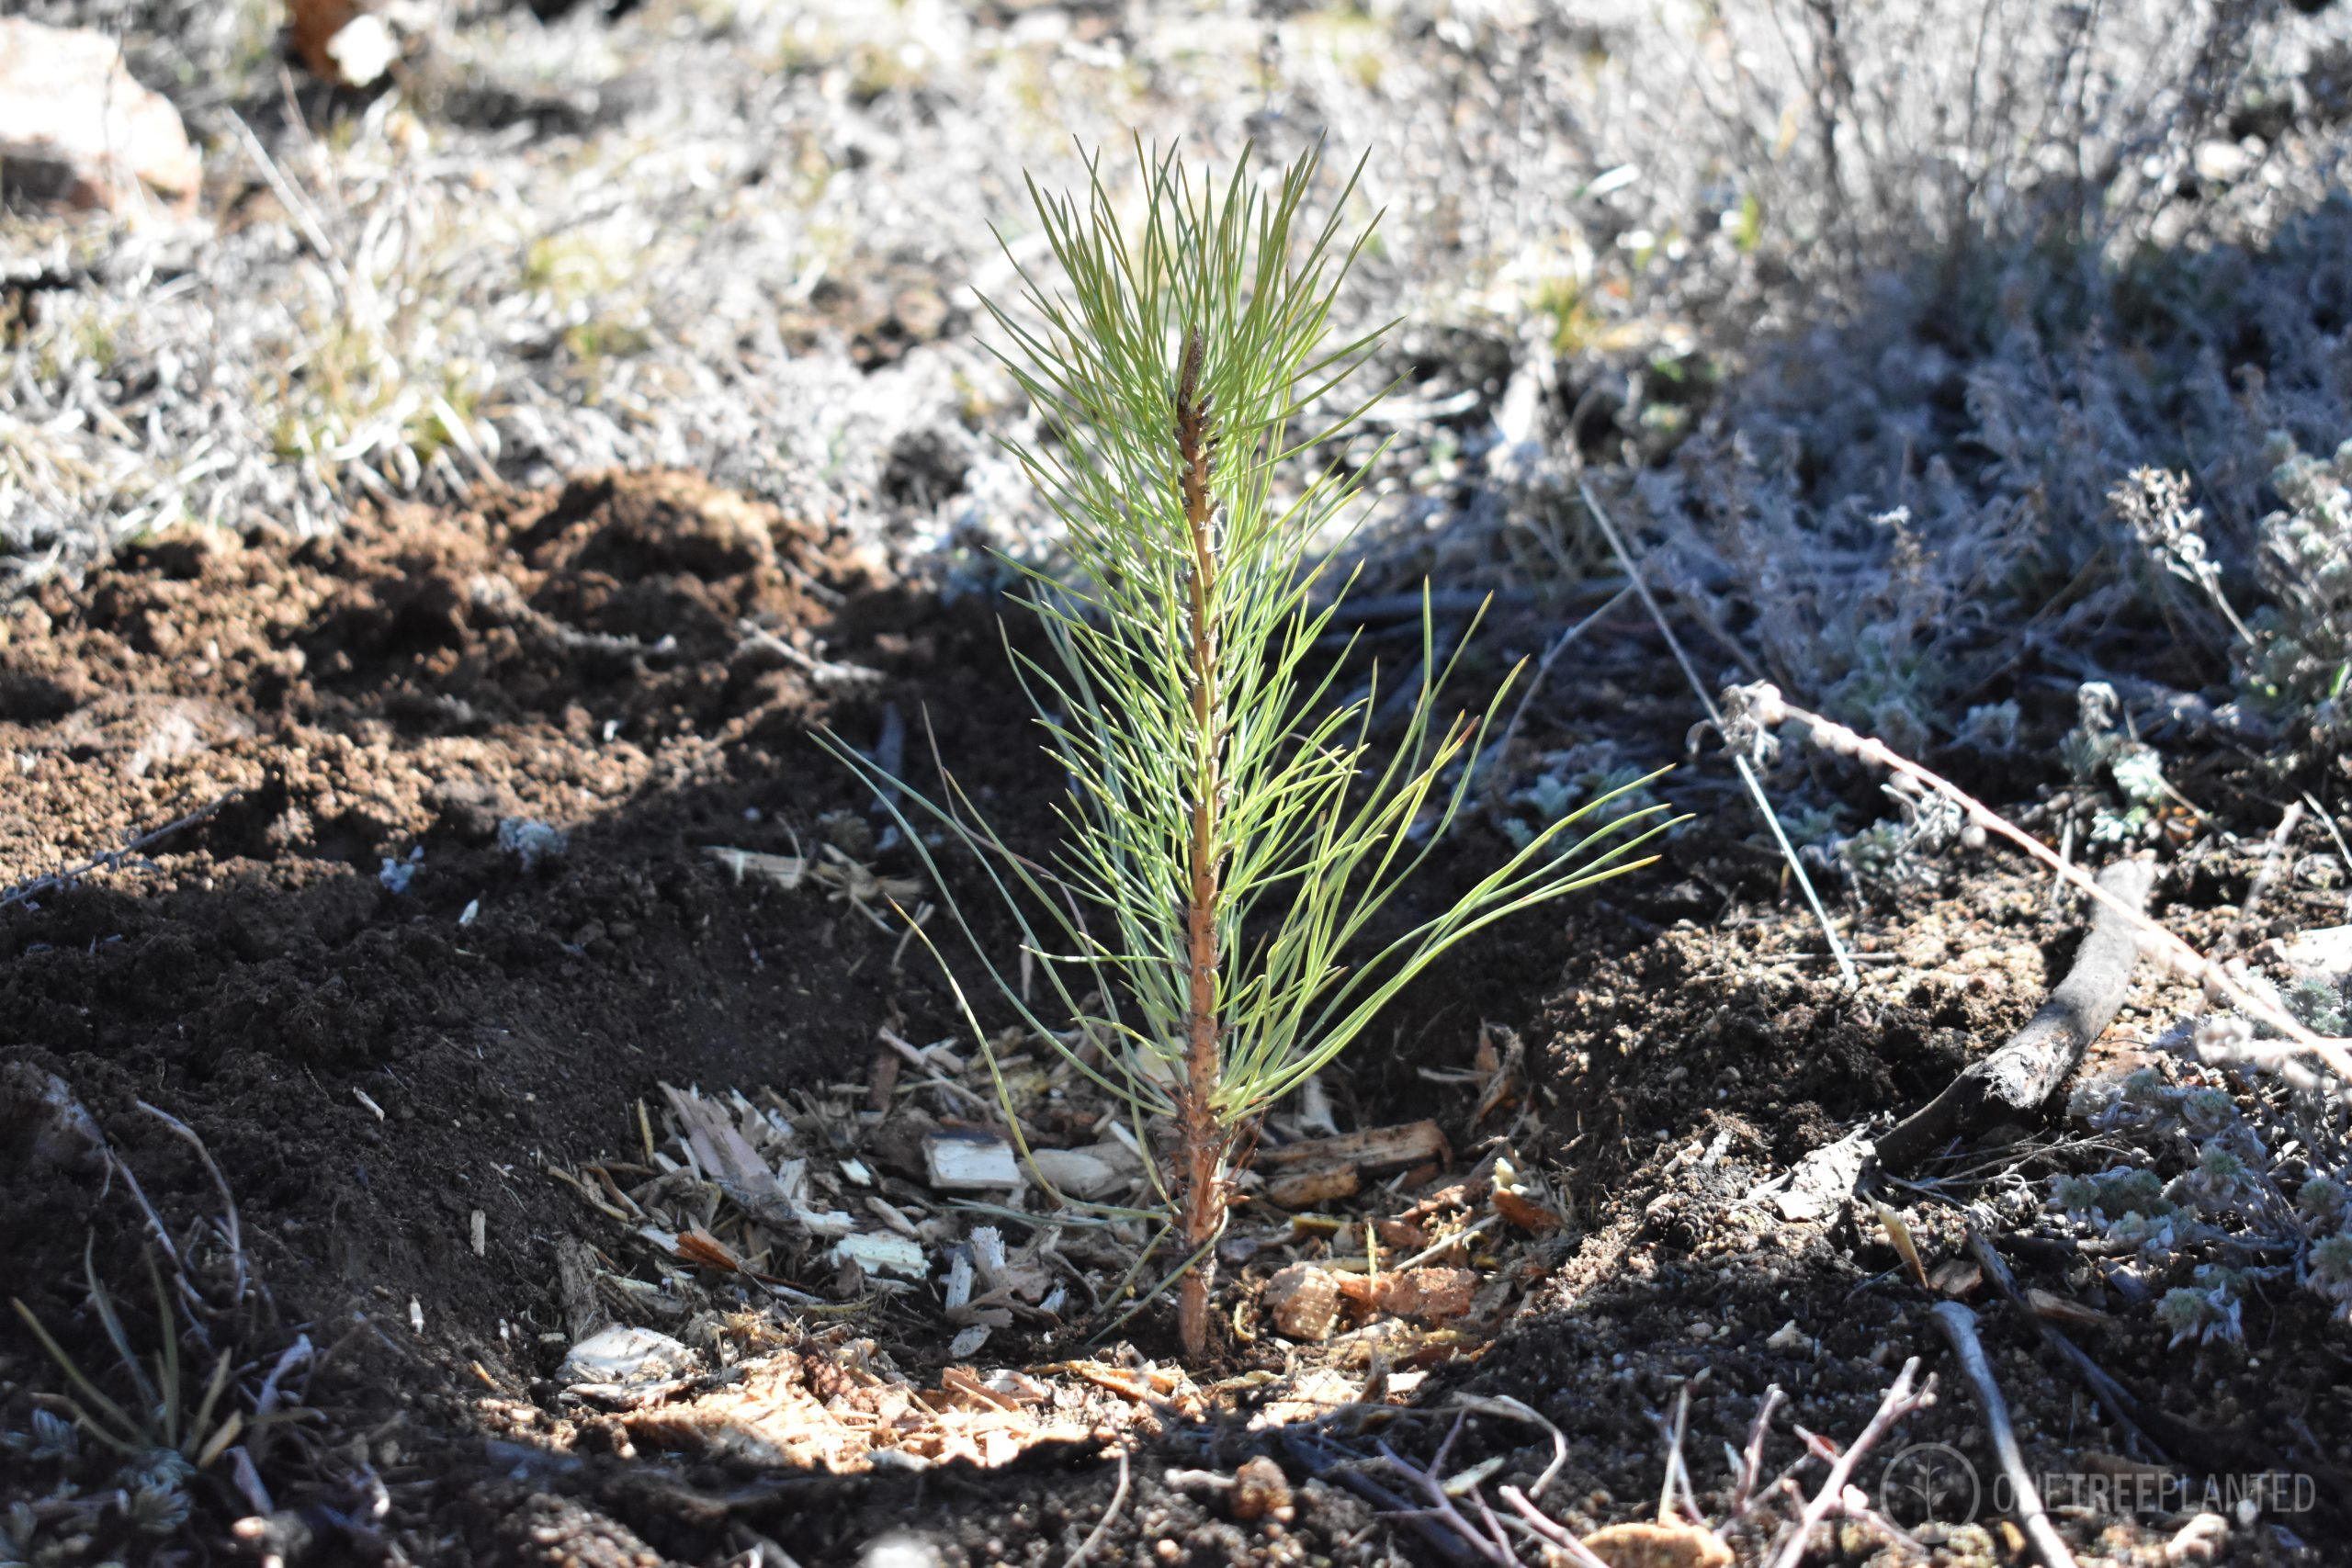 One-Tree-Planted